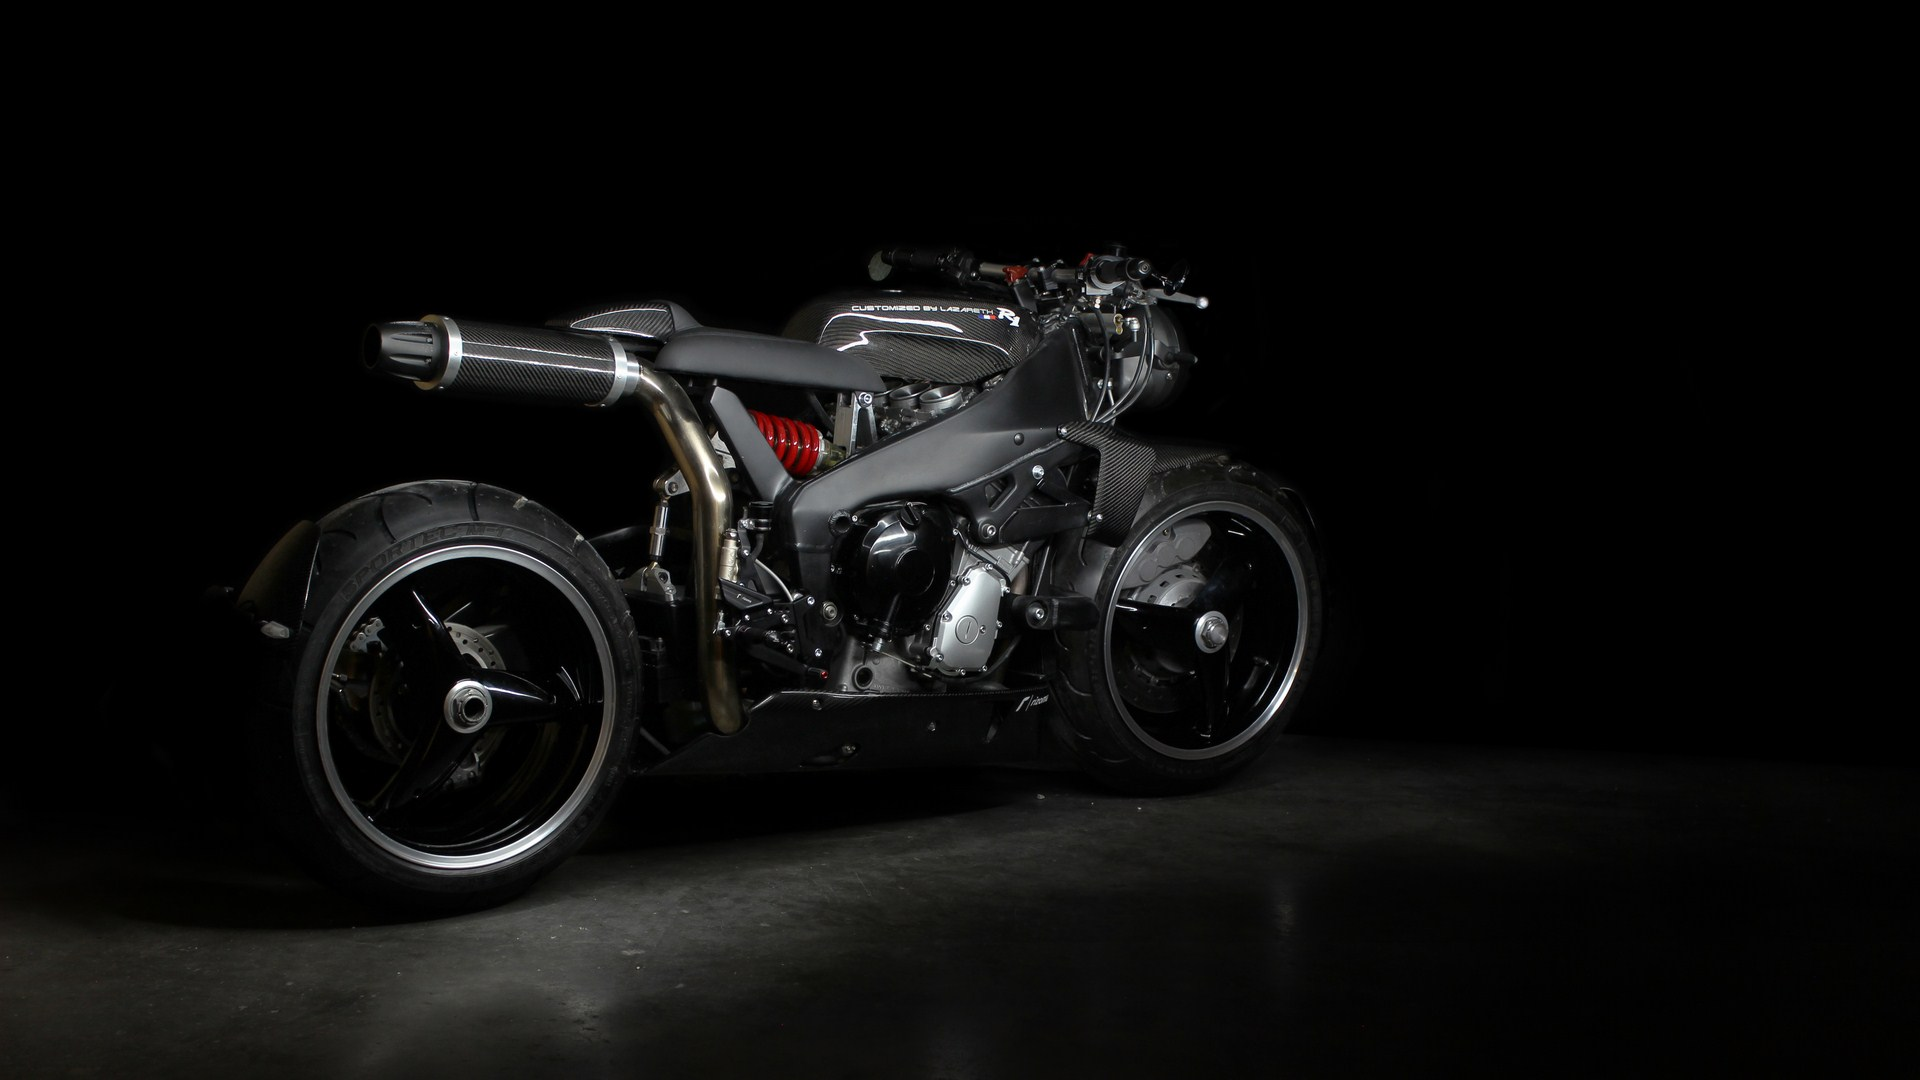 Lazareth - Caferacer - Yamaha R1 - Back to the future (4) (Copier)